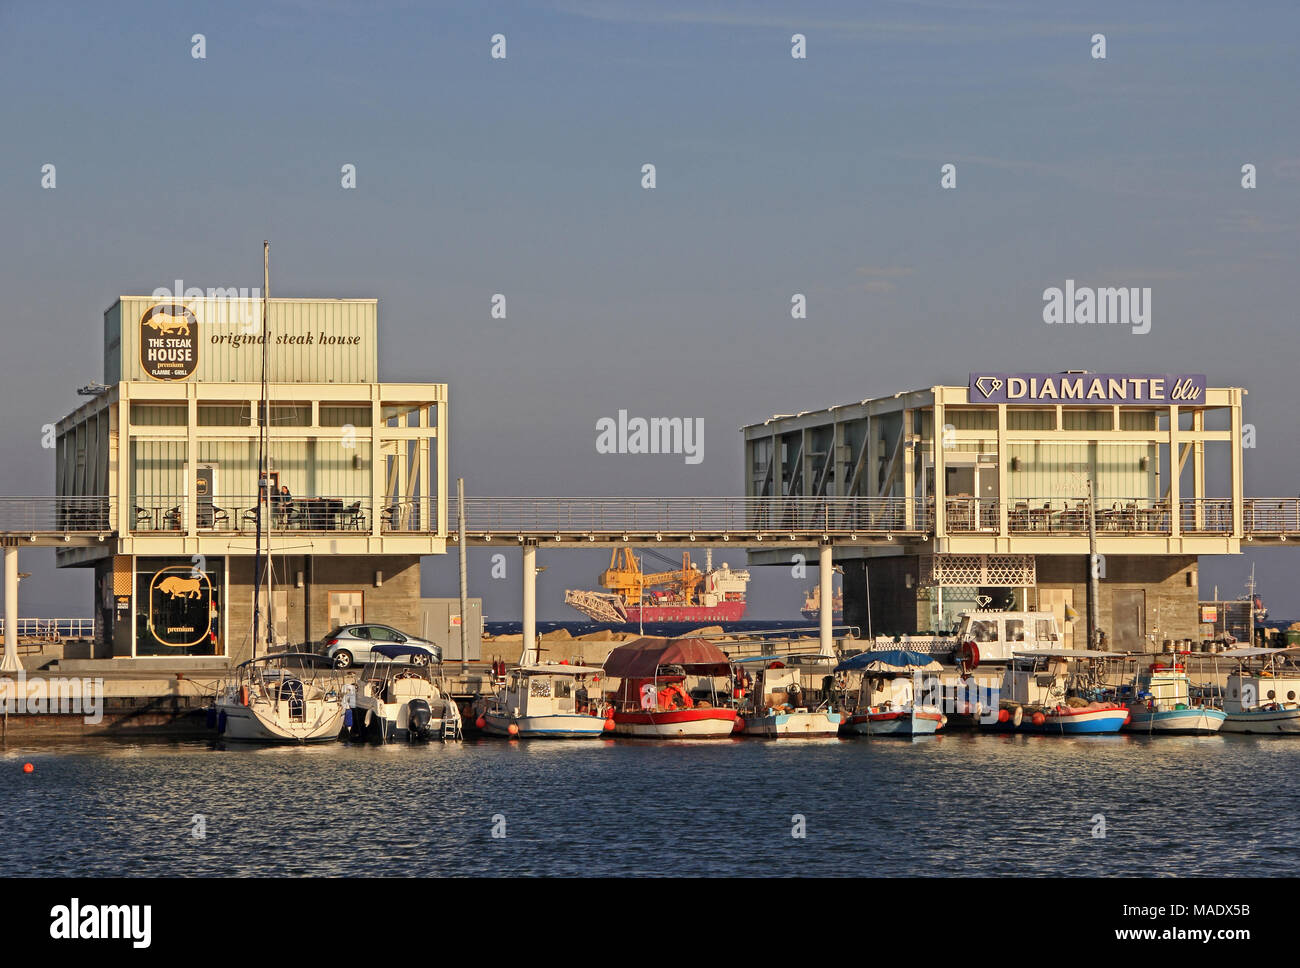 The Steak House and Diamante blu restaurants on quay of harbour, Limassol, Cyprus - Stock Image